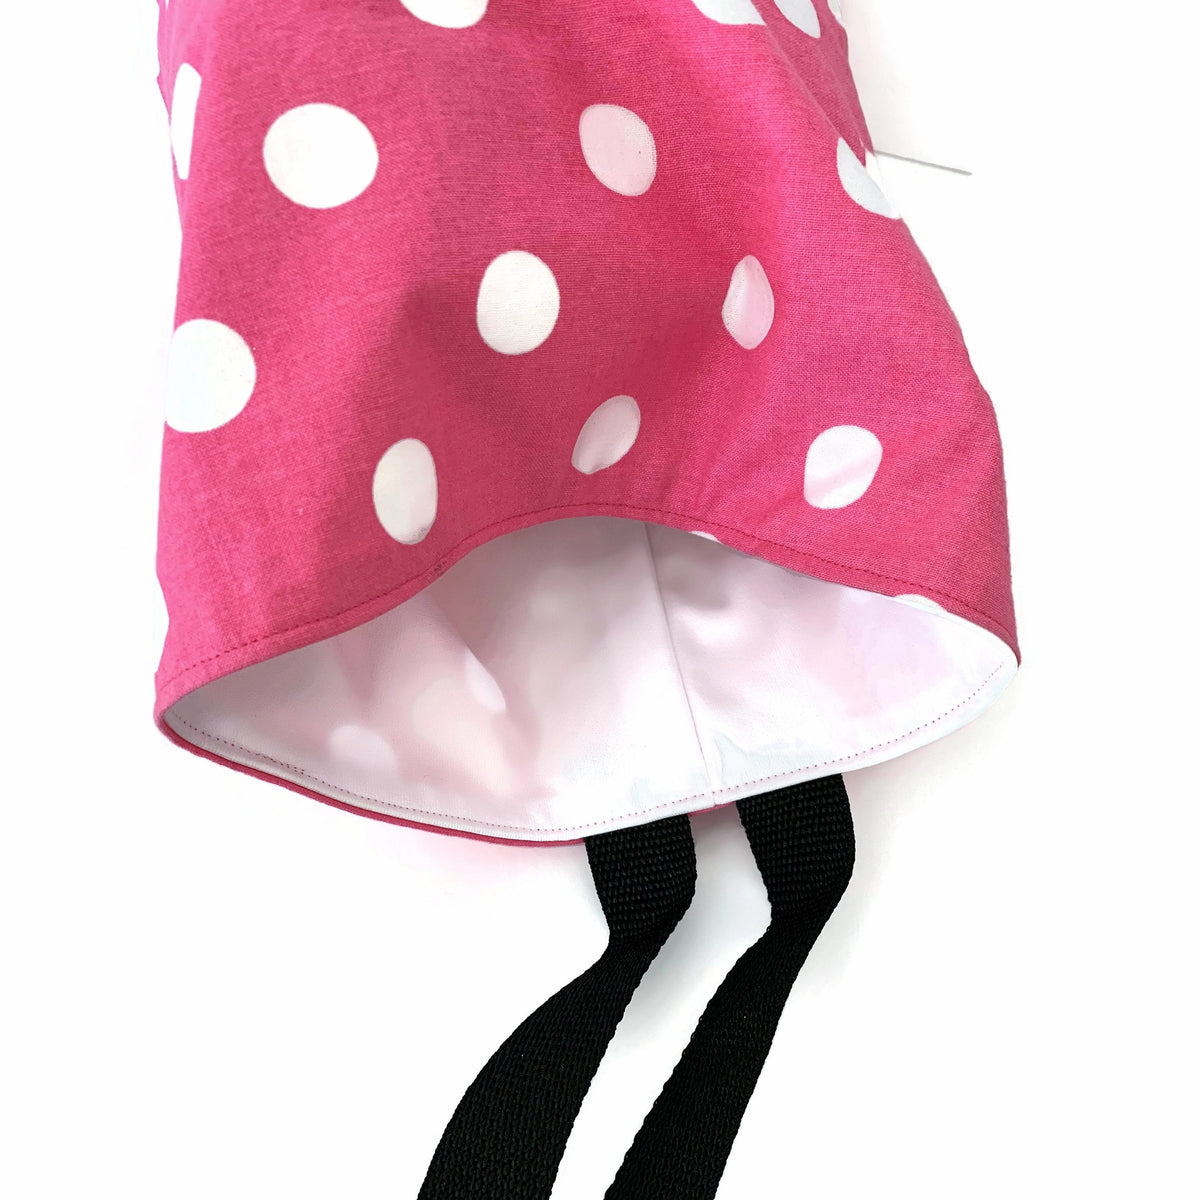 Polka Dots Pink - Car Accessory - Lined Garbage Bag for Cars - Soft Bag